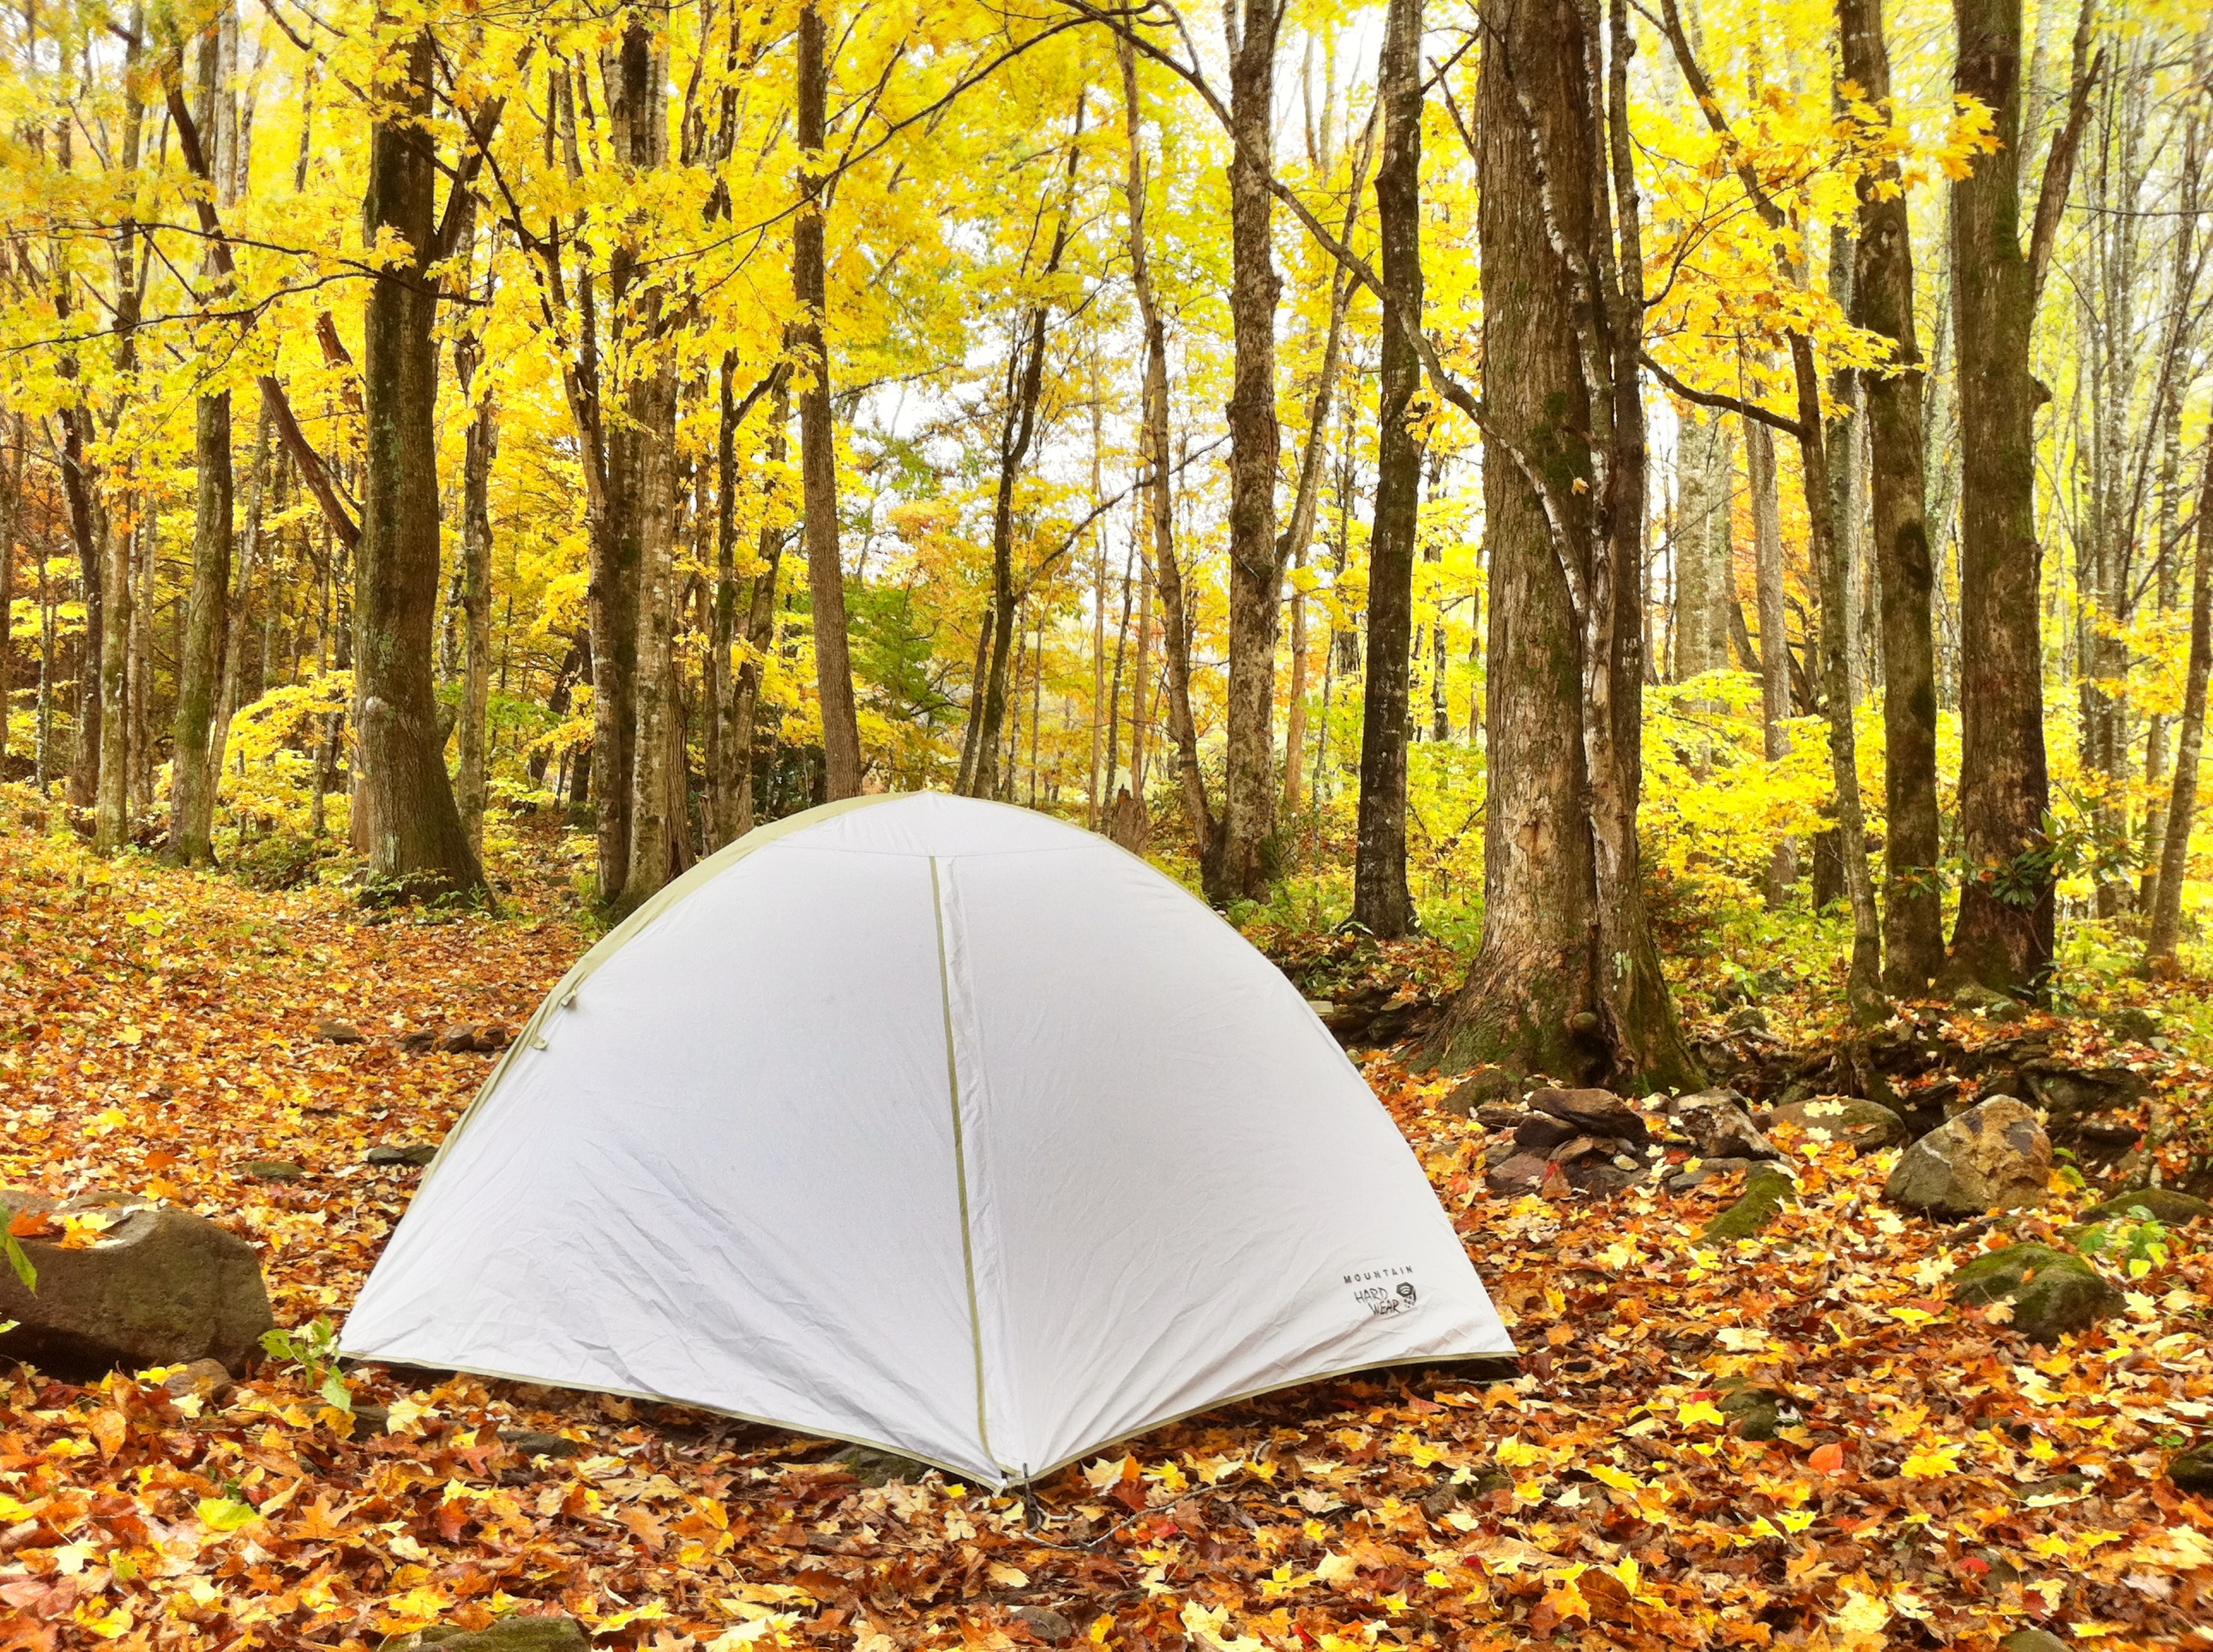 grandfather mountain tent camping